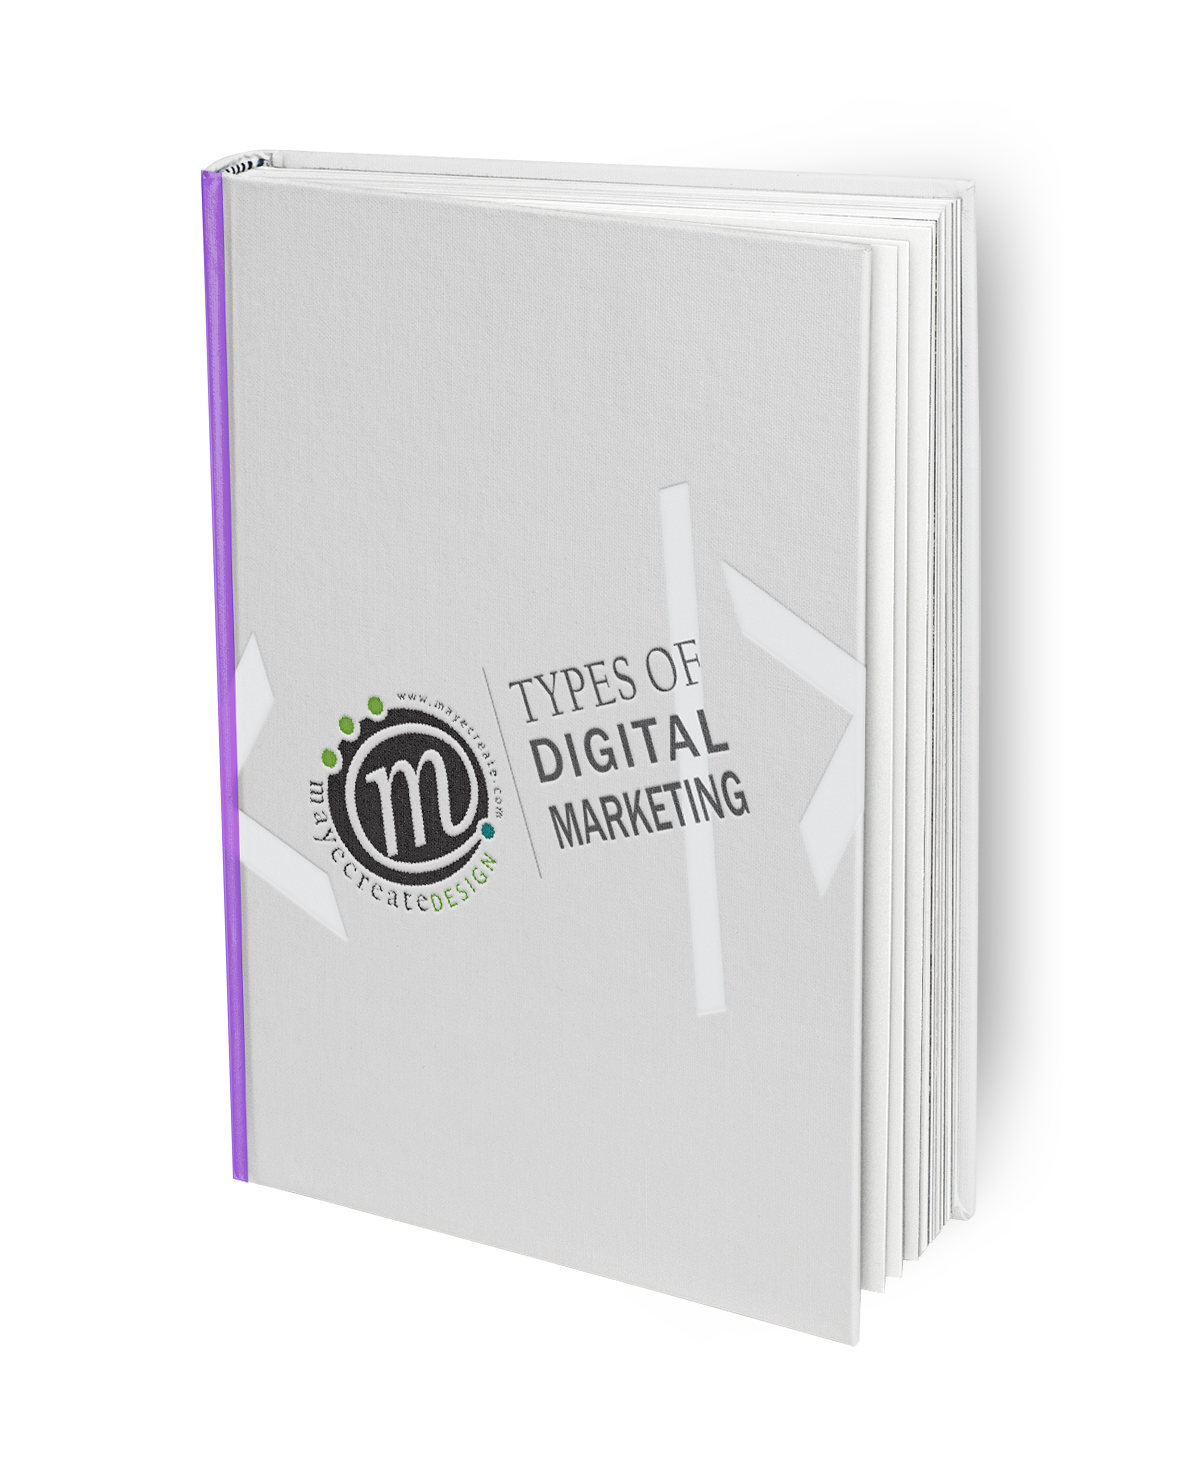 Types of Digital Marketing E-Book